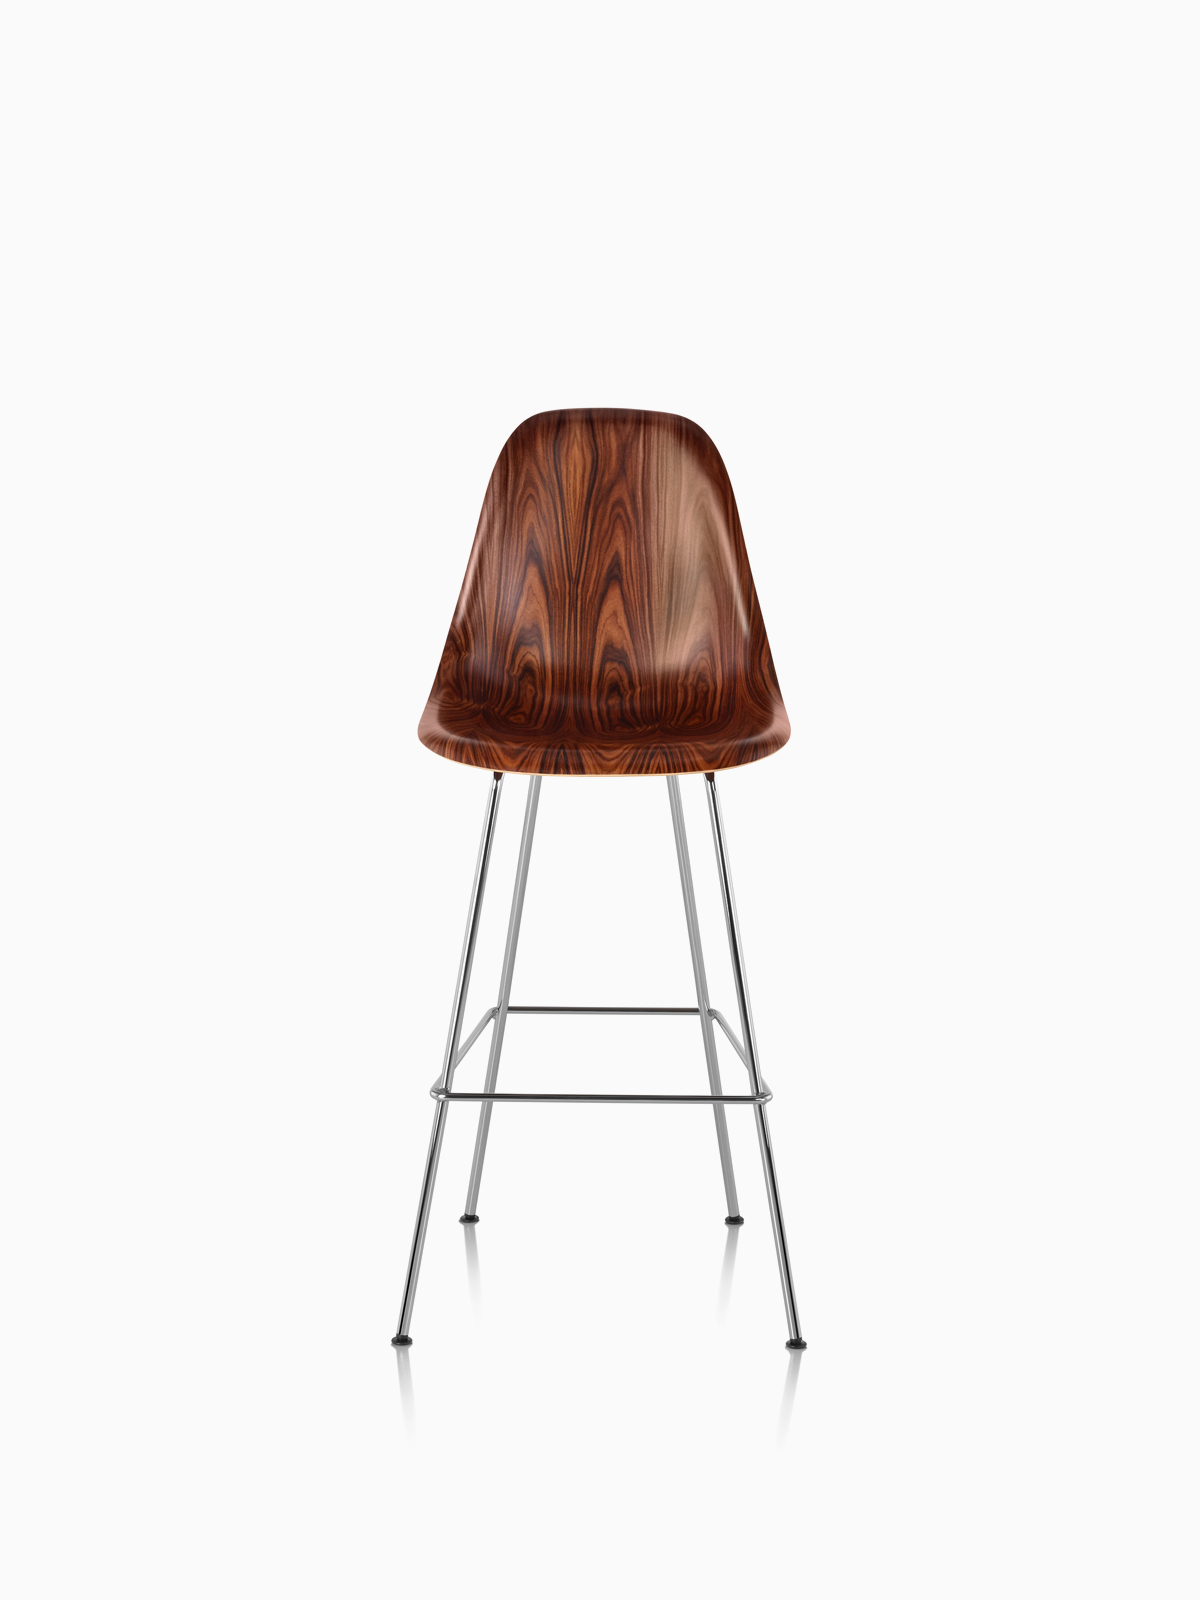 Banqueta Eames Molded Wood